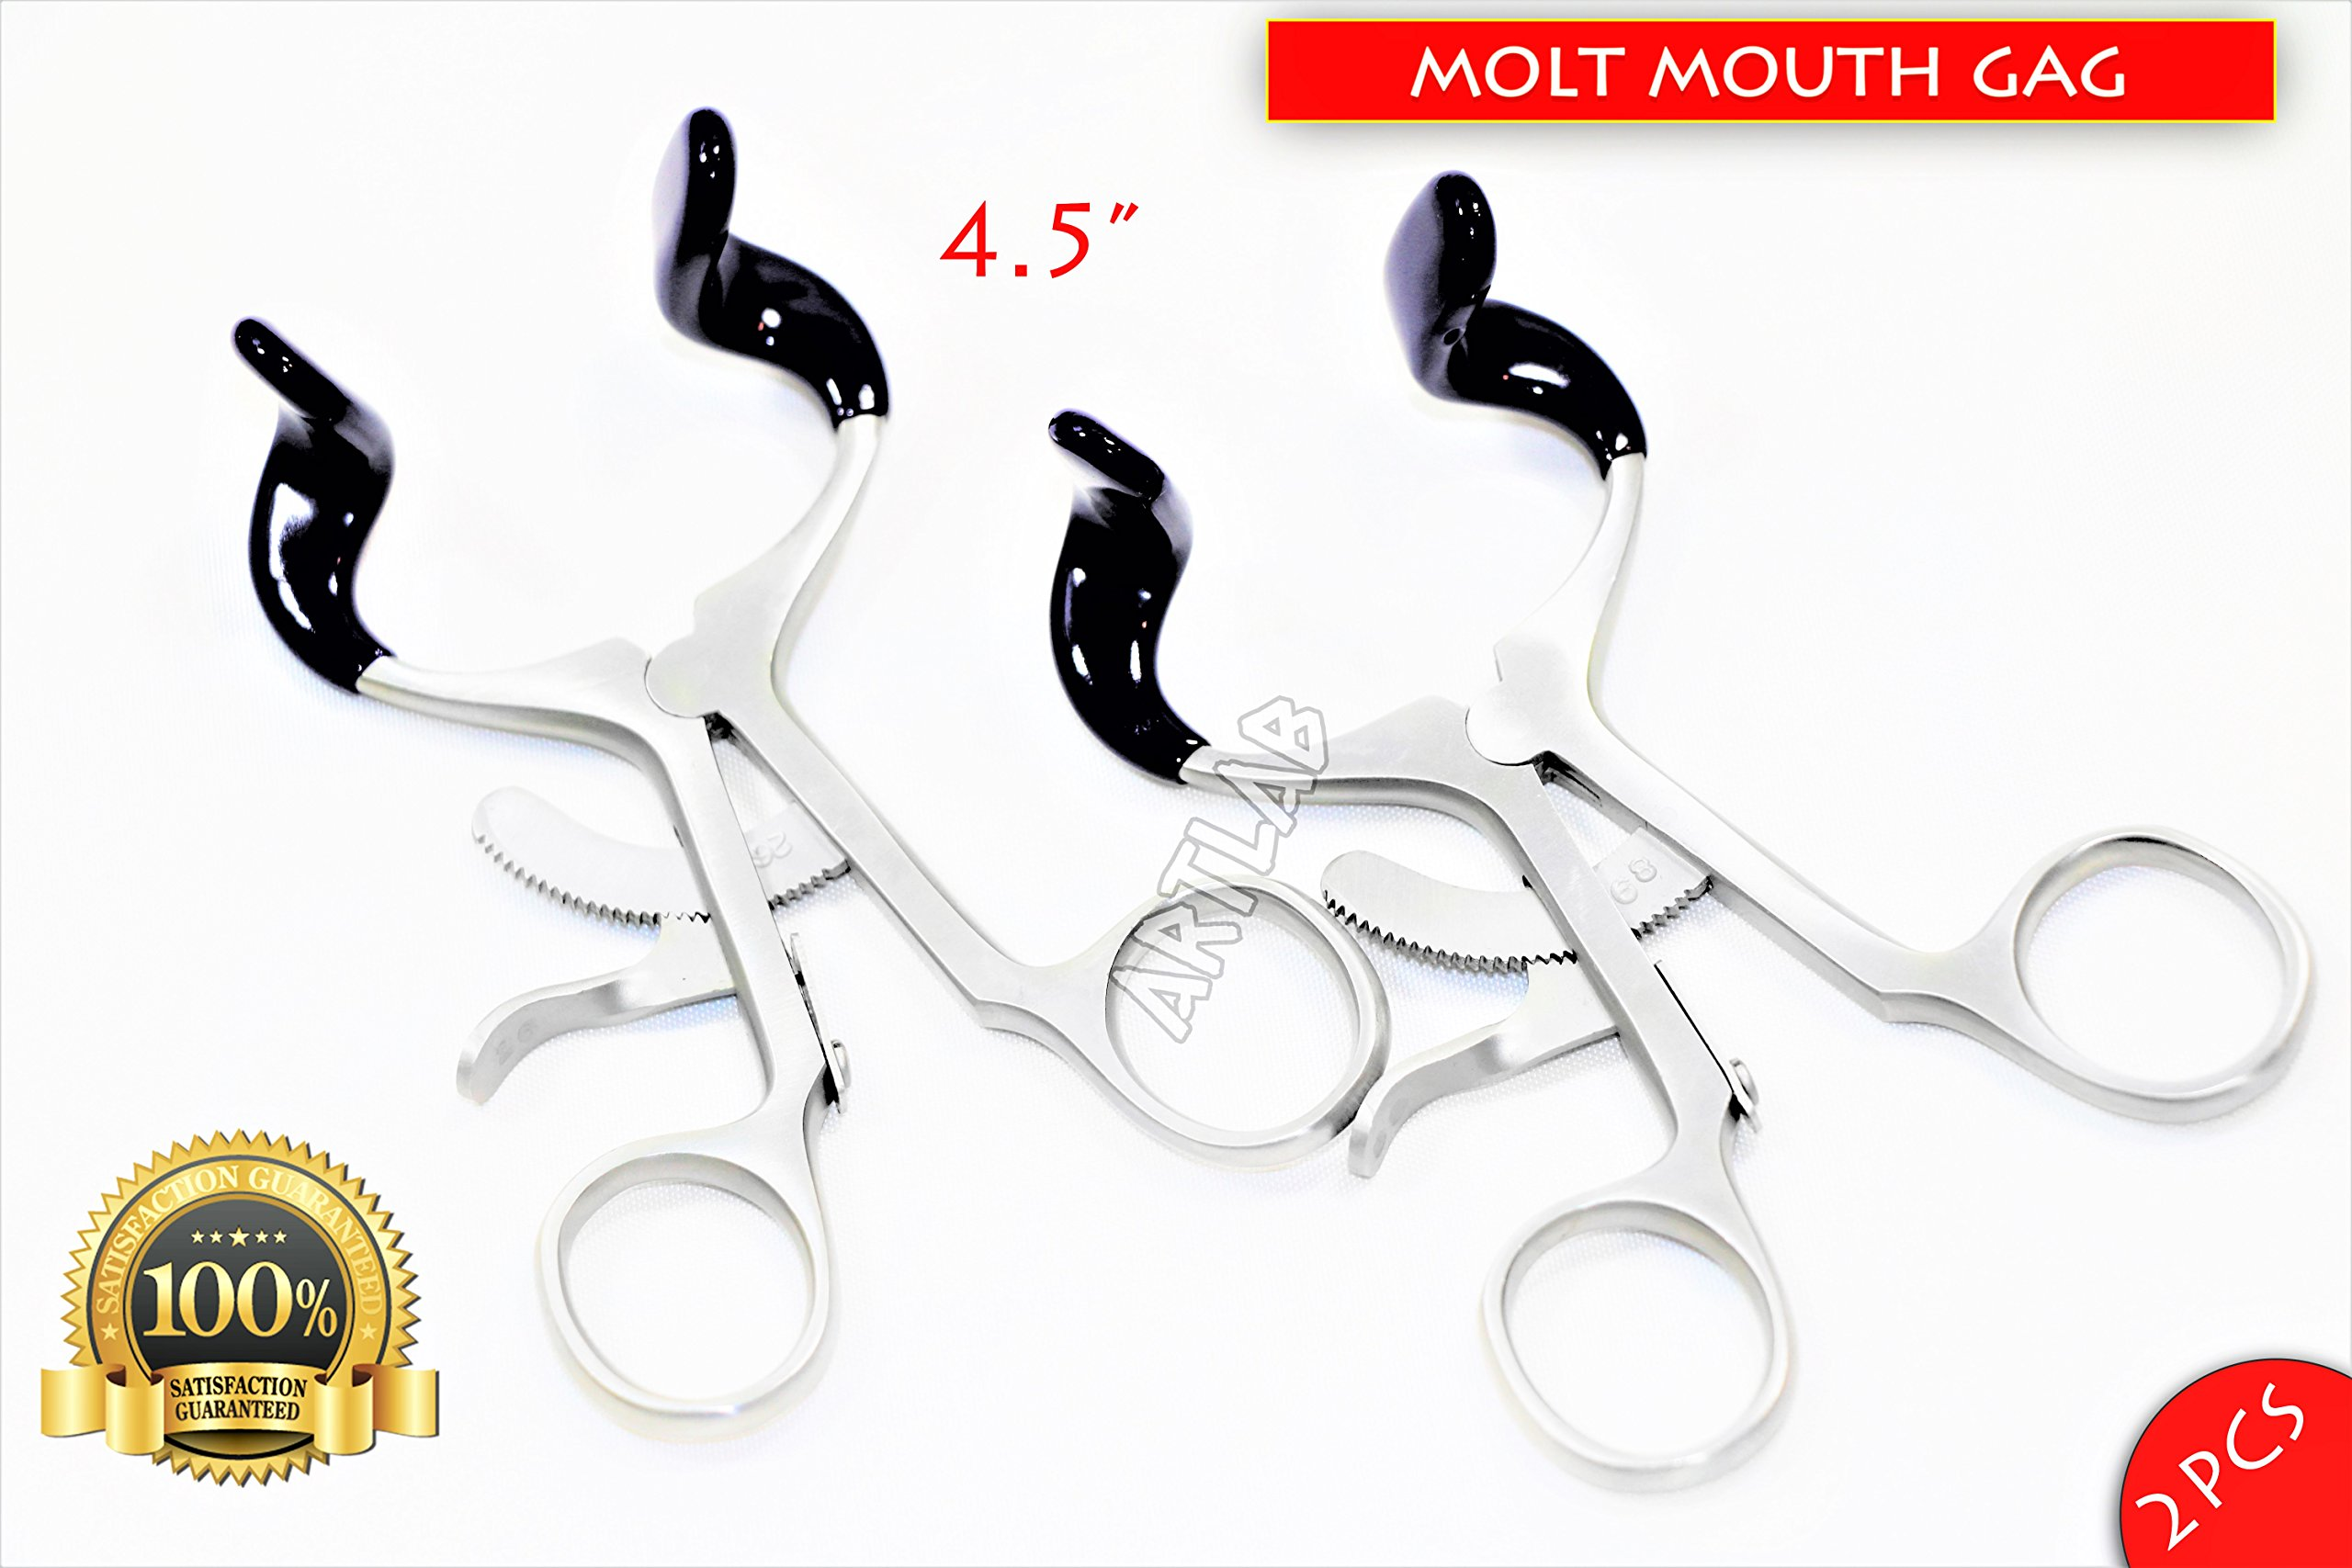 4.5'' Molt Dental Mouth Gag with Silicone Tips 2PCS Dental Orthodontic (CYNAMED)